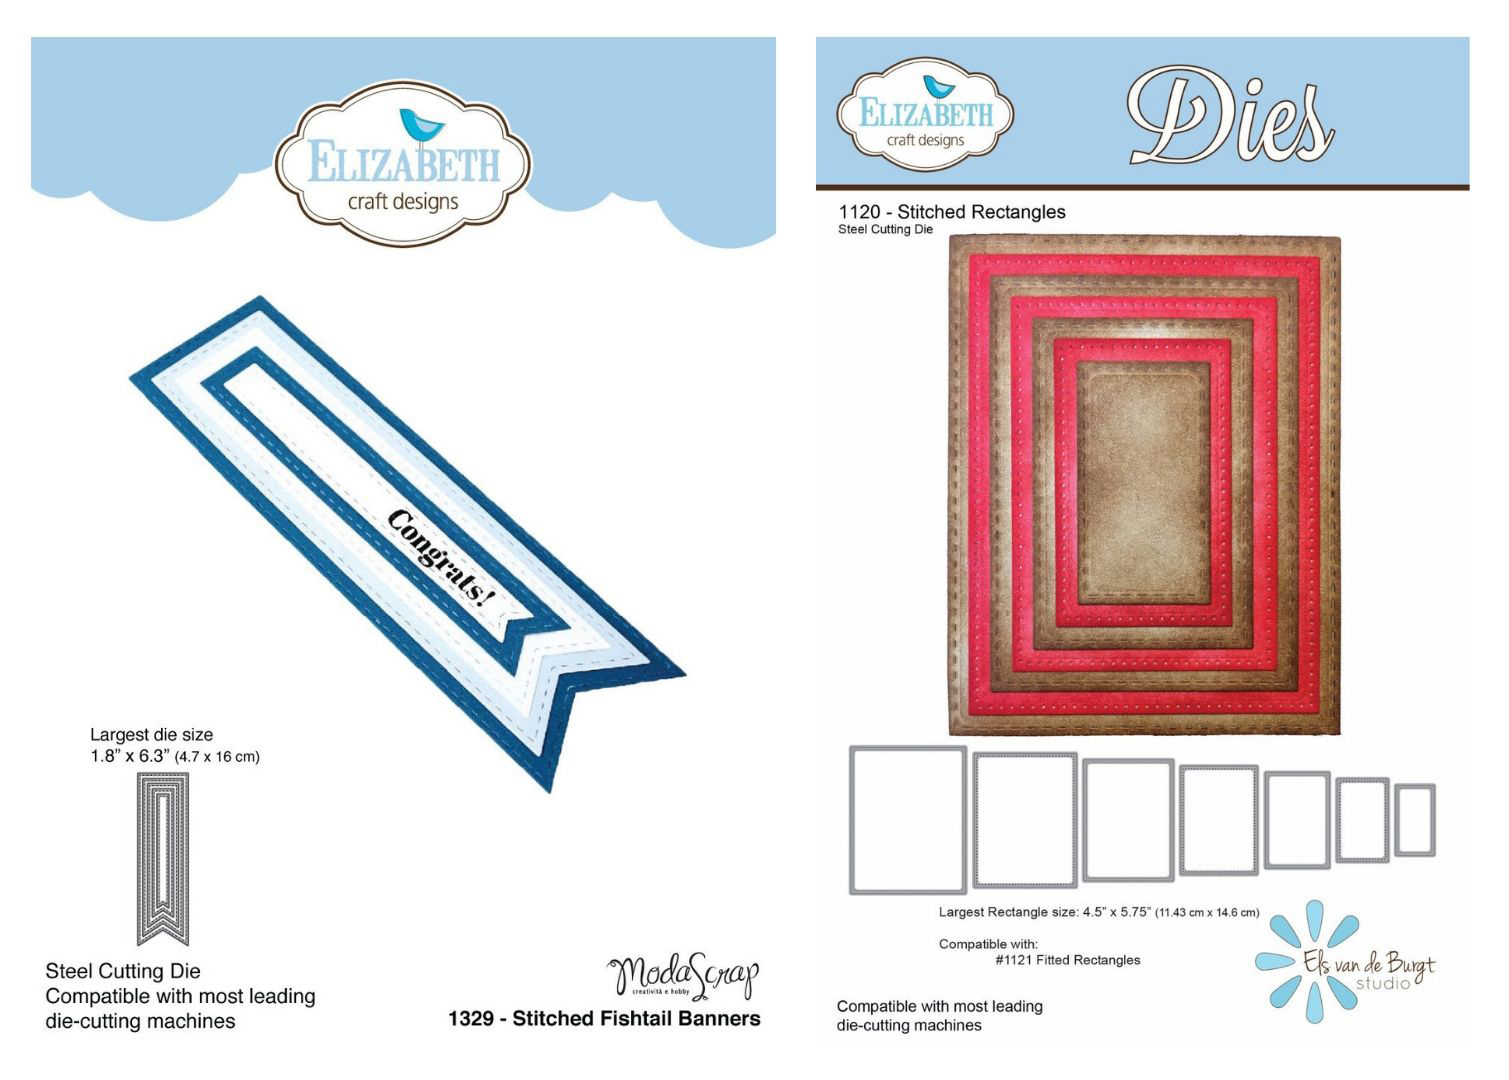 Elizabeth Craft Designs Stitched Fishtail and Rectangle Dies